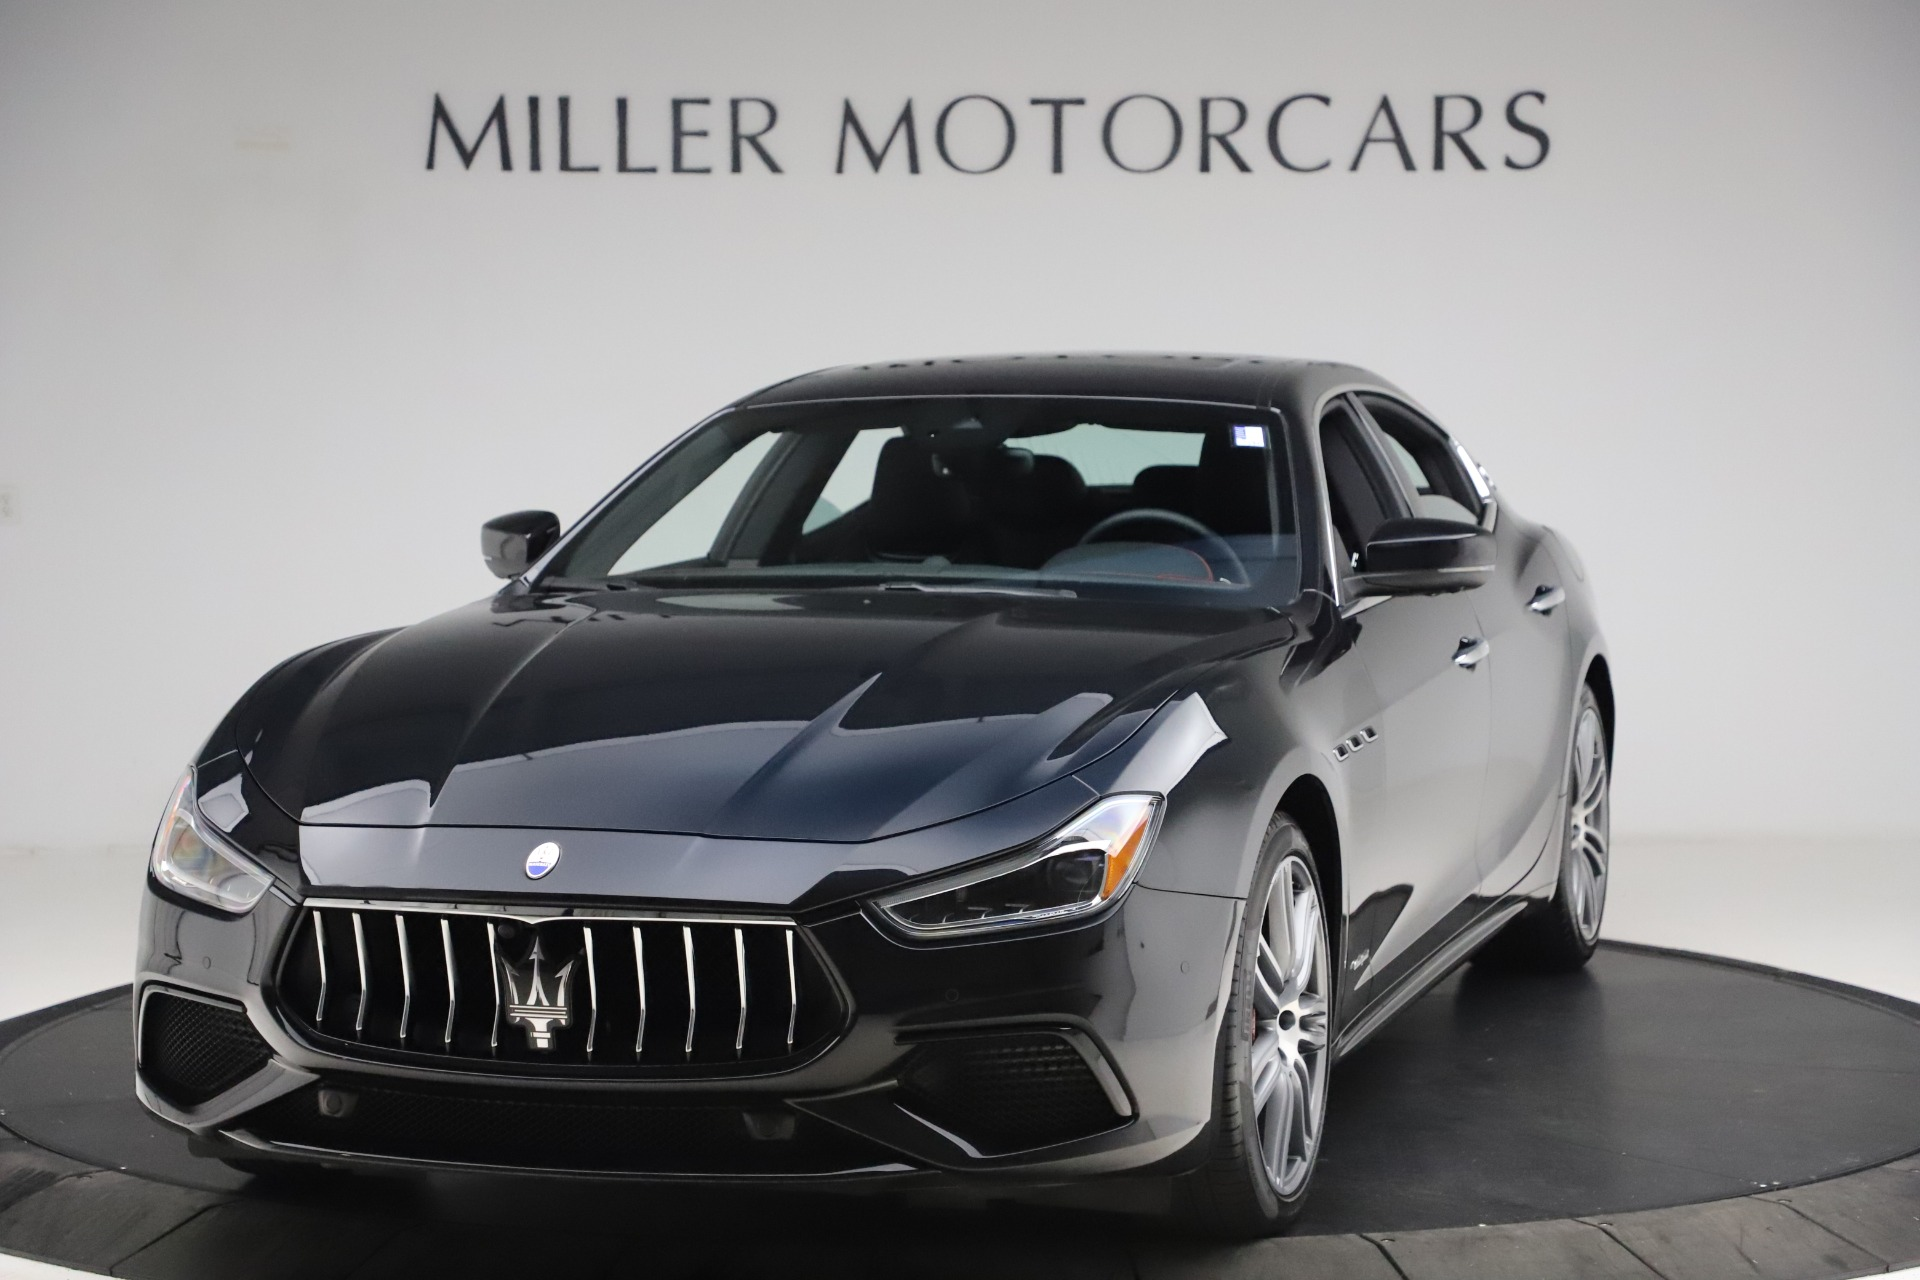 New 2020 Maserati Ghibli S Q4 GranSport for sale $70,331 at McLaren Greenwich in Greenwich CT 06830 1